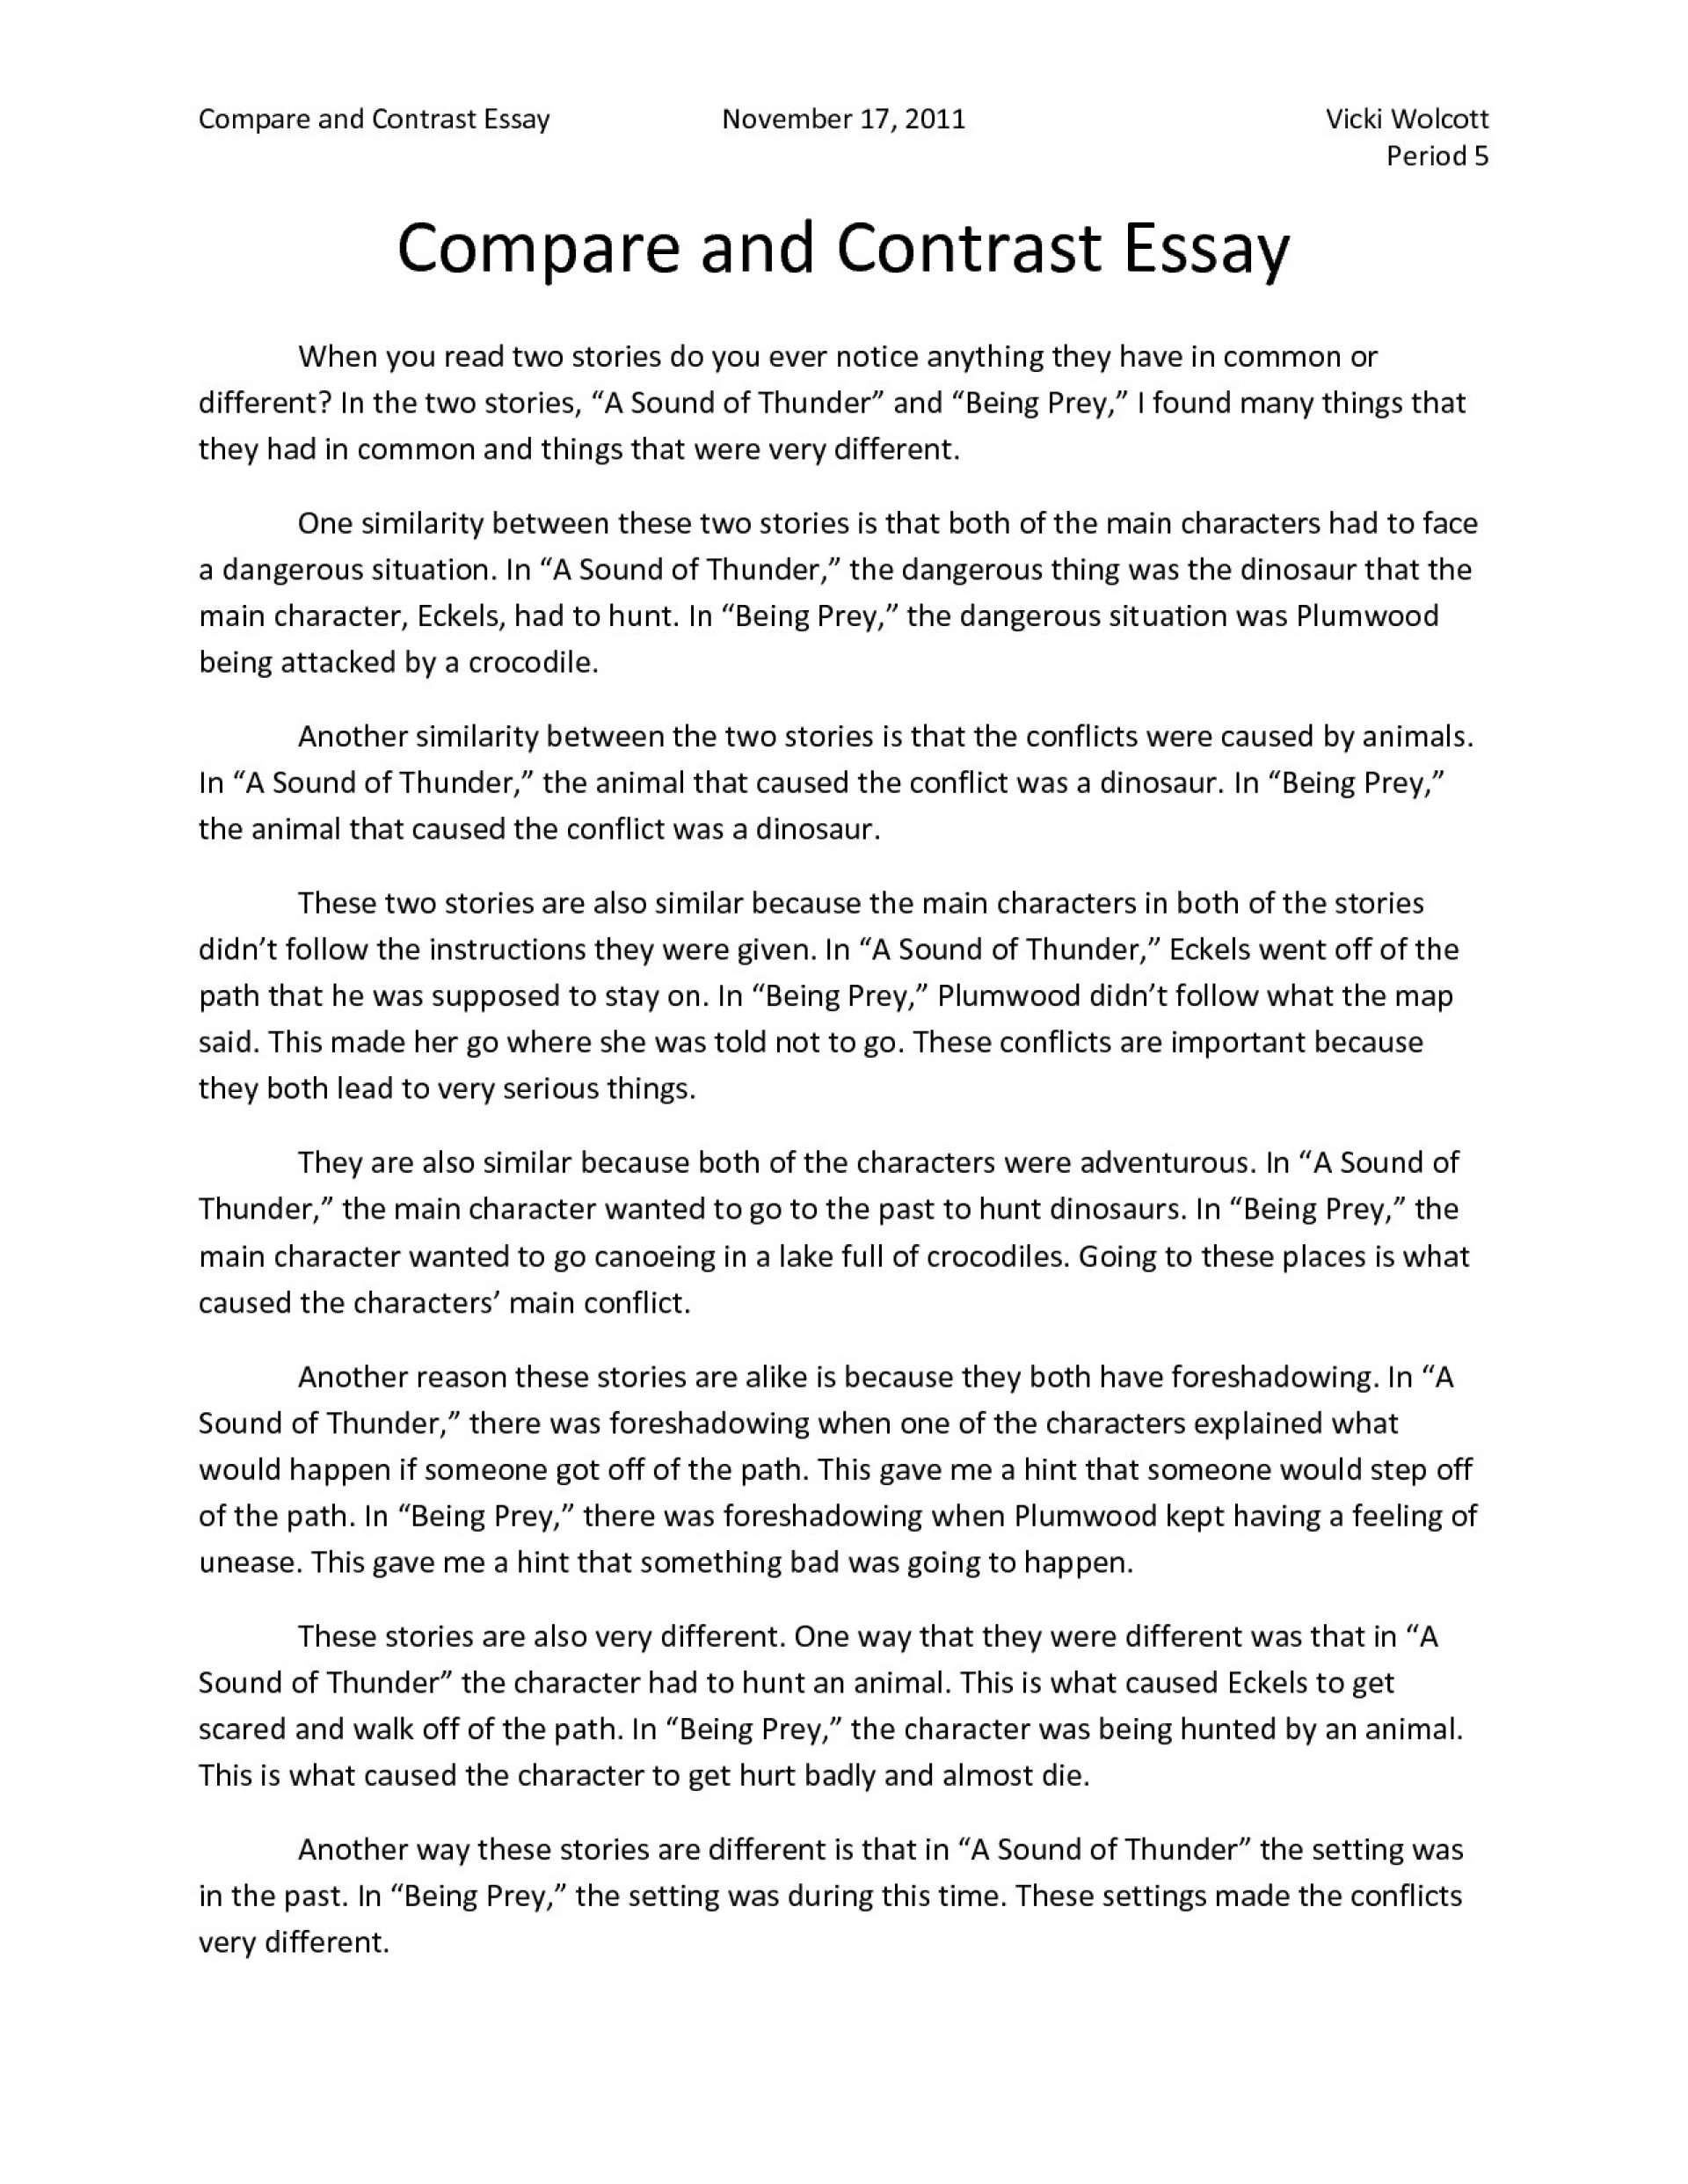 001 Example Of License Agreement Archives Tienda Biogota Co New Examples Comparison Essays Validte An Essay For Me Help Reflectiveting Ma Comparing Characters Analysis Characterization How To Astounding Write On A Paper Research 1920